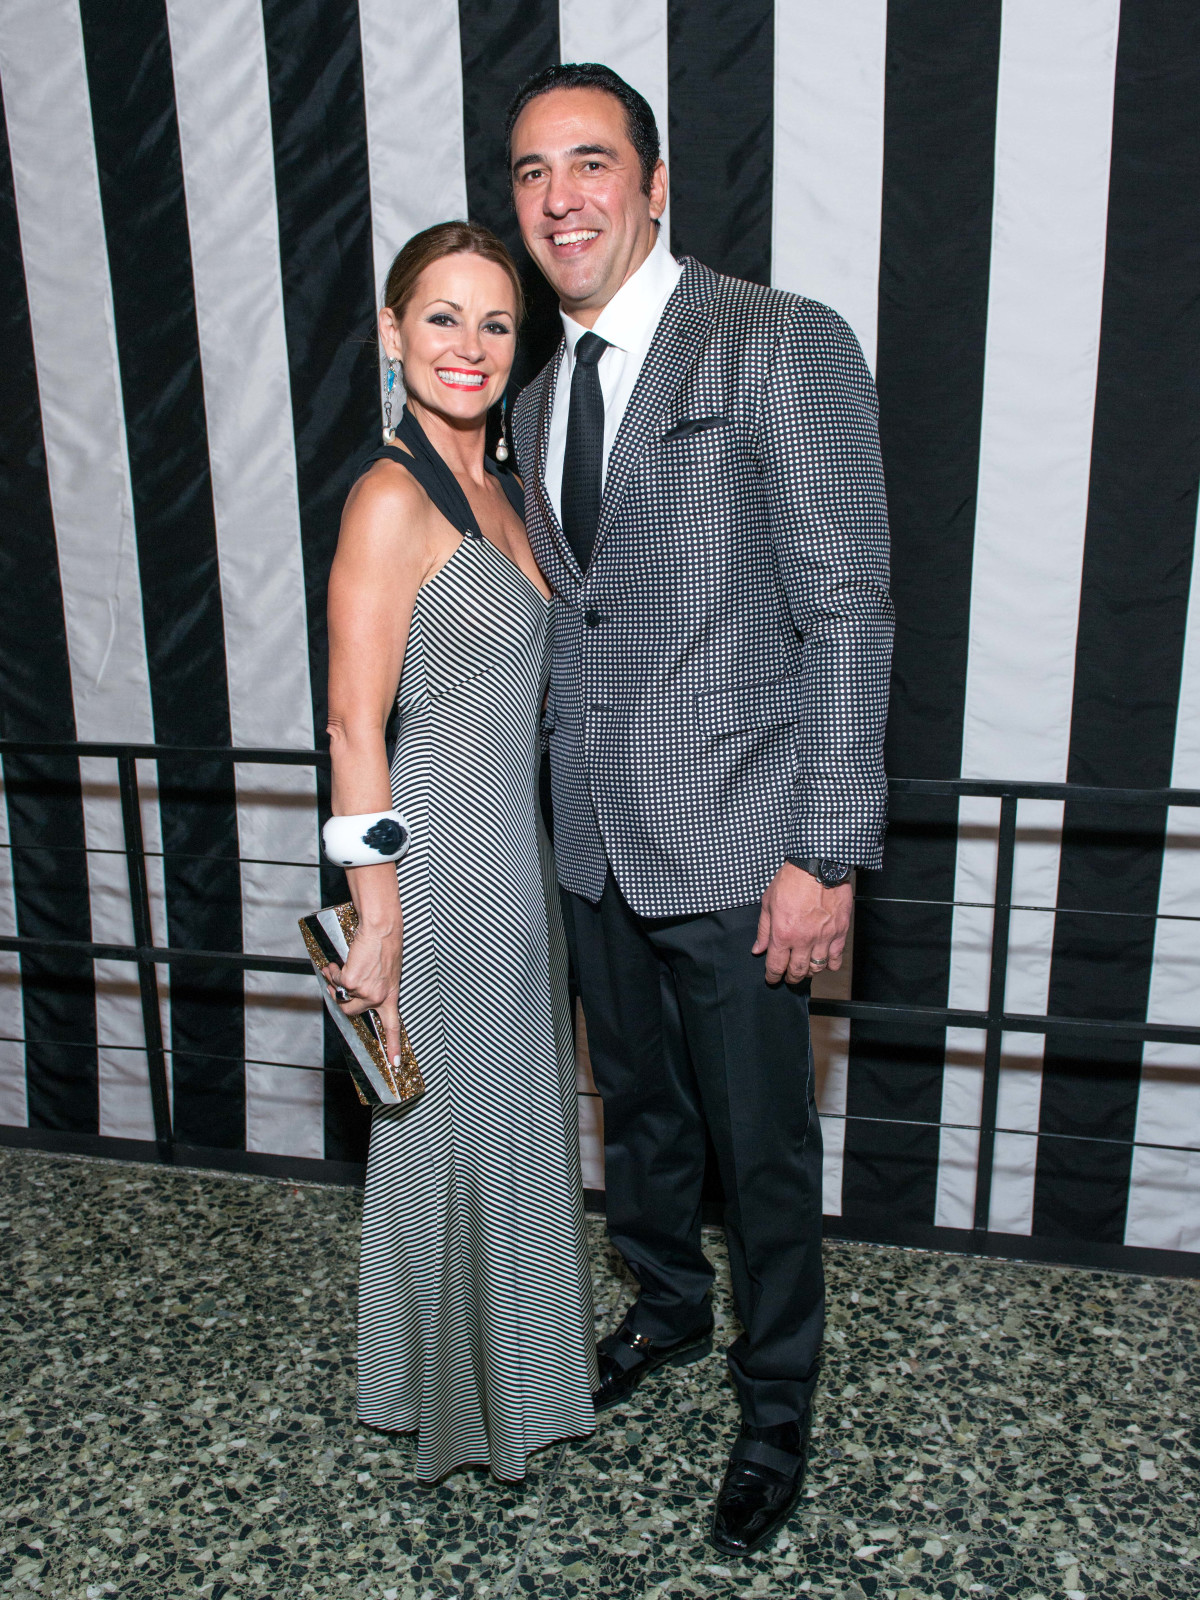 News, Shelby, Museum of Fine Arts gala, Oct. 2015, Lucinda Loya, Javier Loya